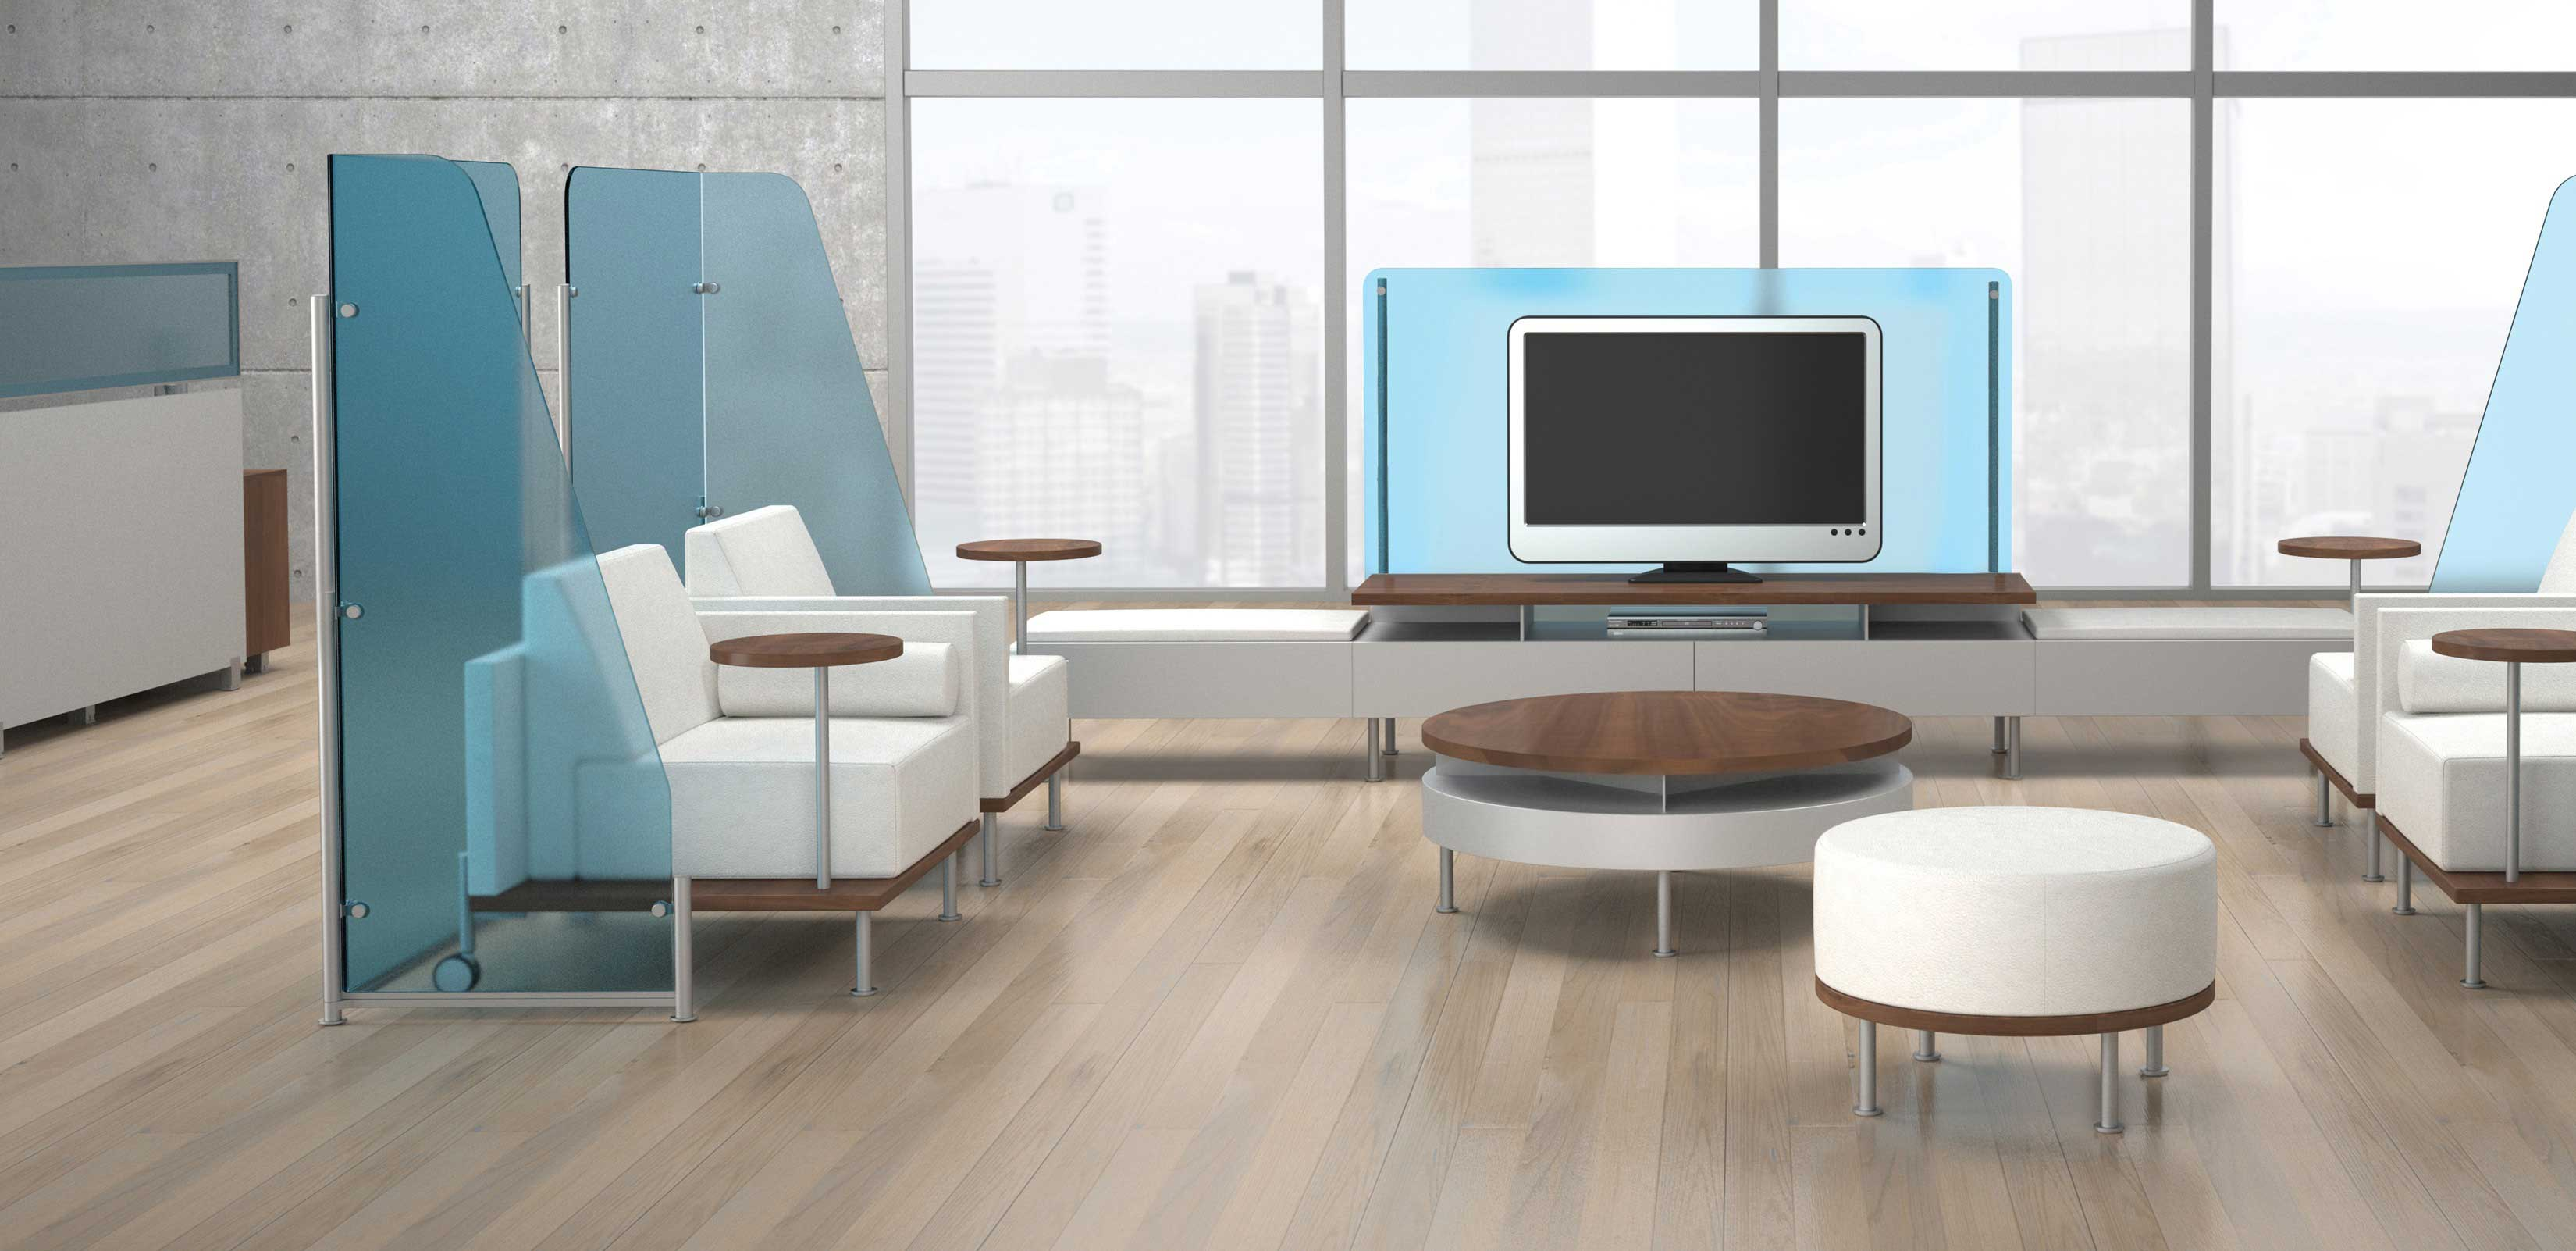 furniture for office space. brilliant office alternative spaces with furniture for office space